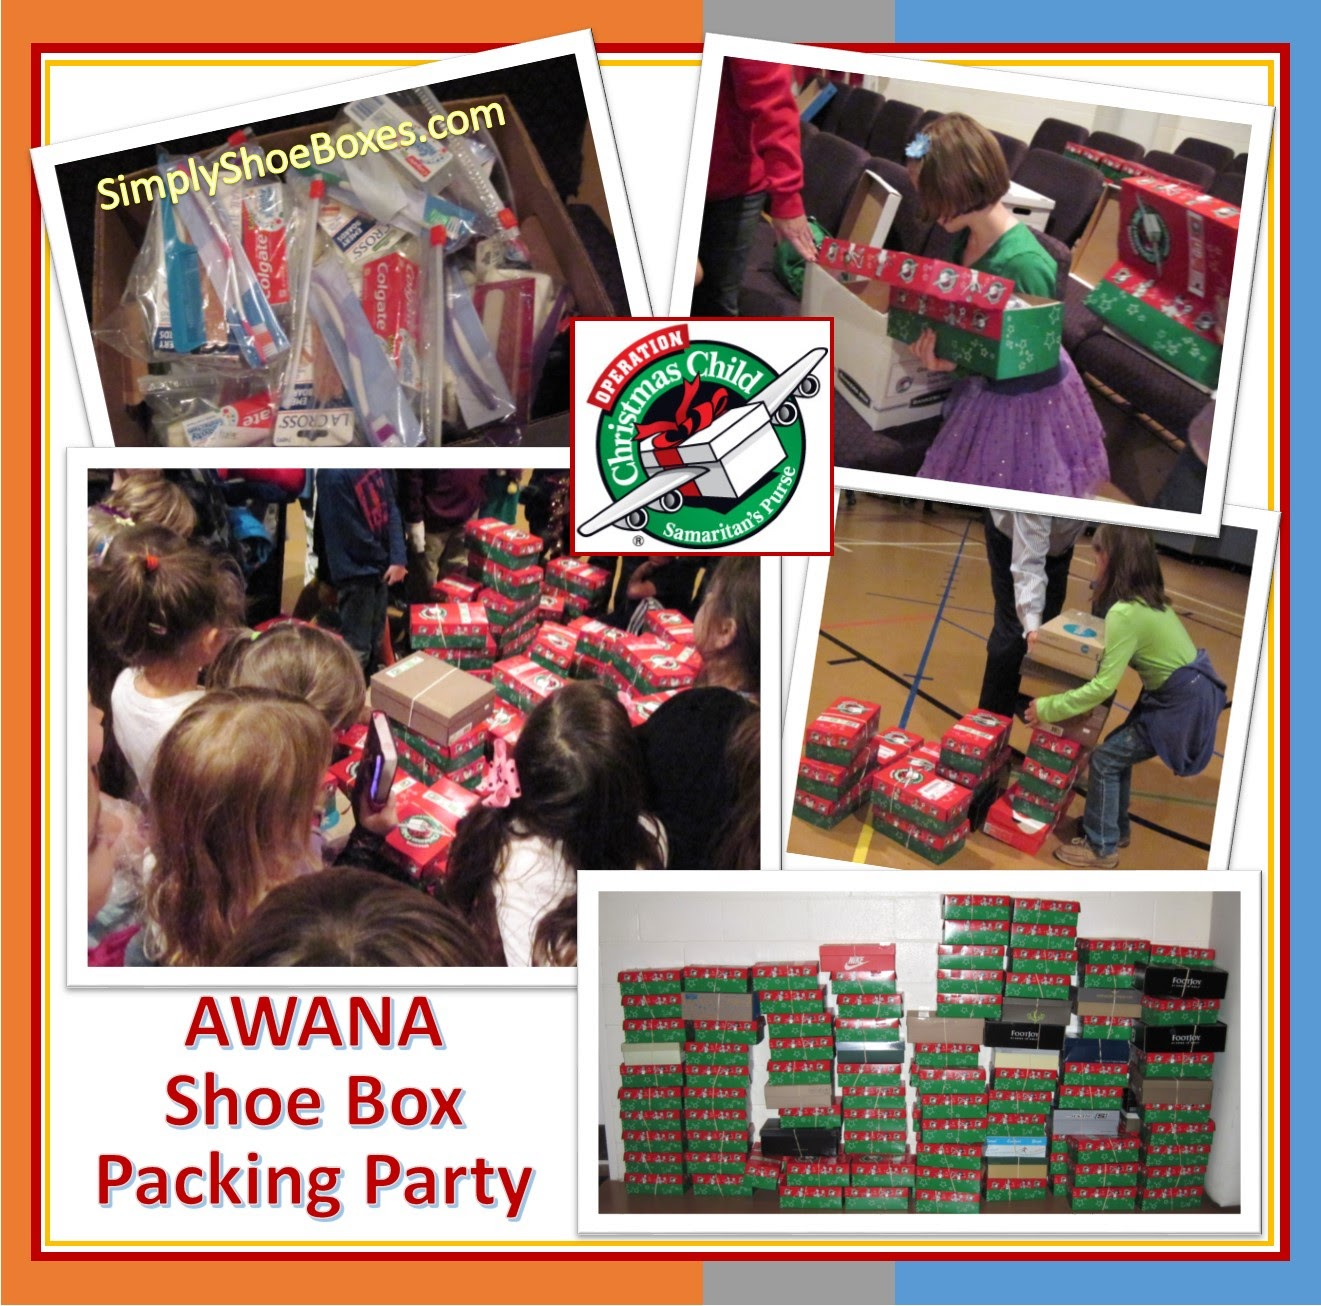 AWANA Operation Christmas Child shoebox packing party.